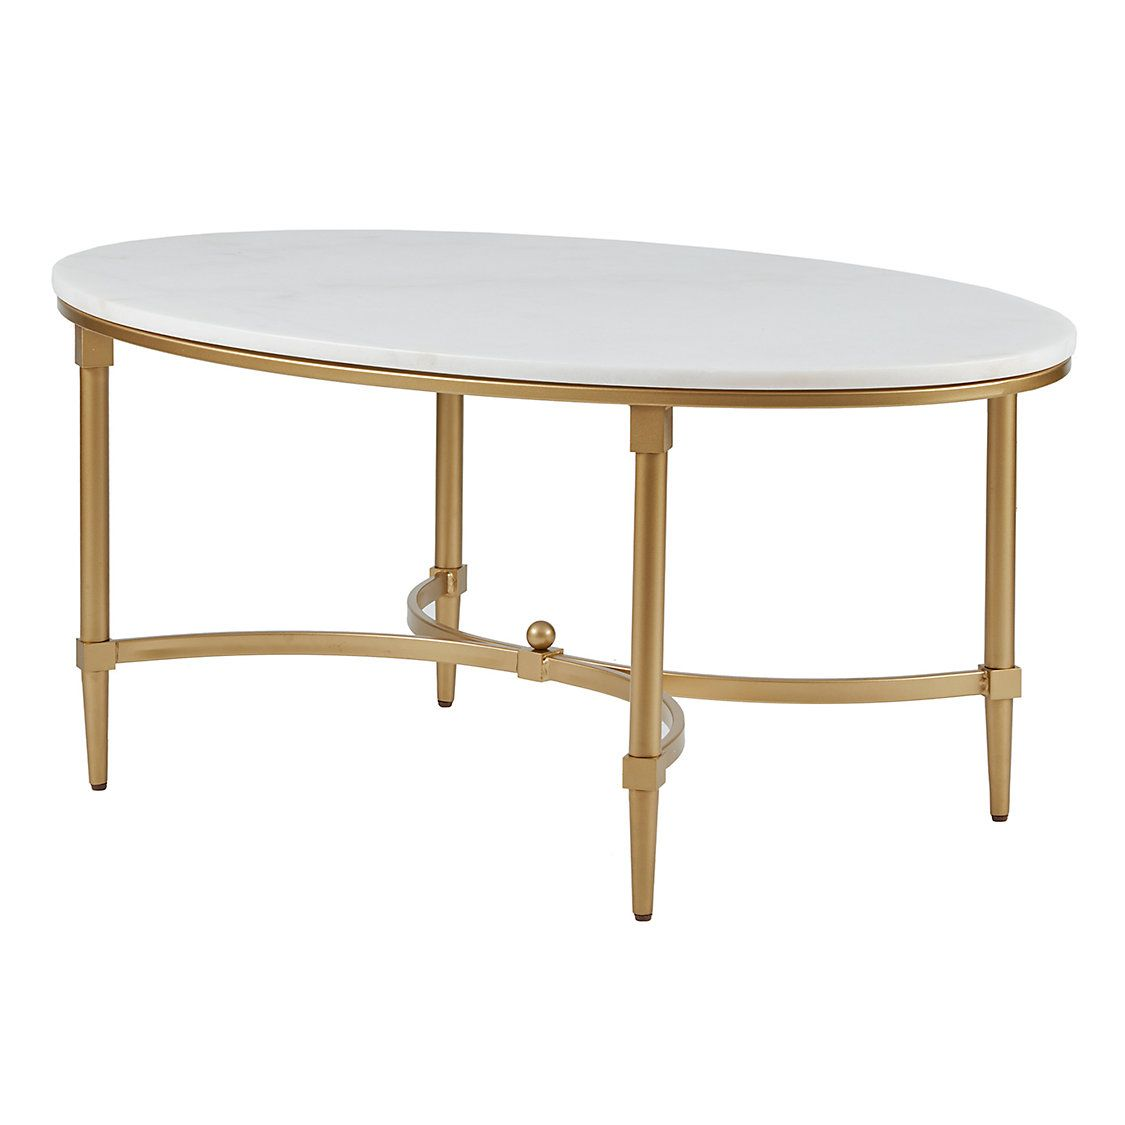 Madison Park Signature Marble Coffee Table Kohls Marble Top Coffee Table Coffee Table Marble Coffee Table [ 1125 x 1125 Pixel ]